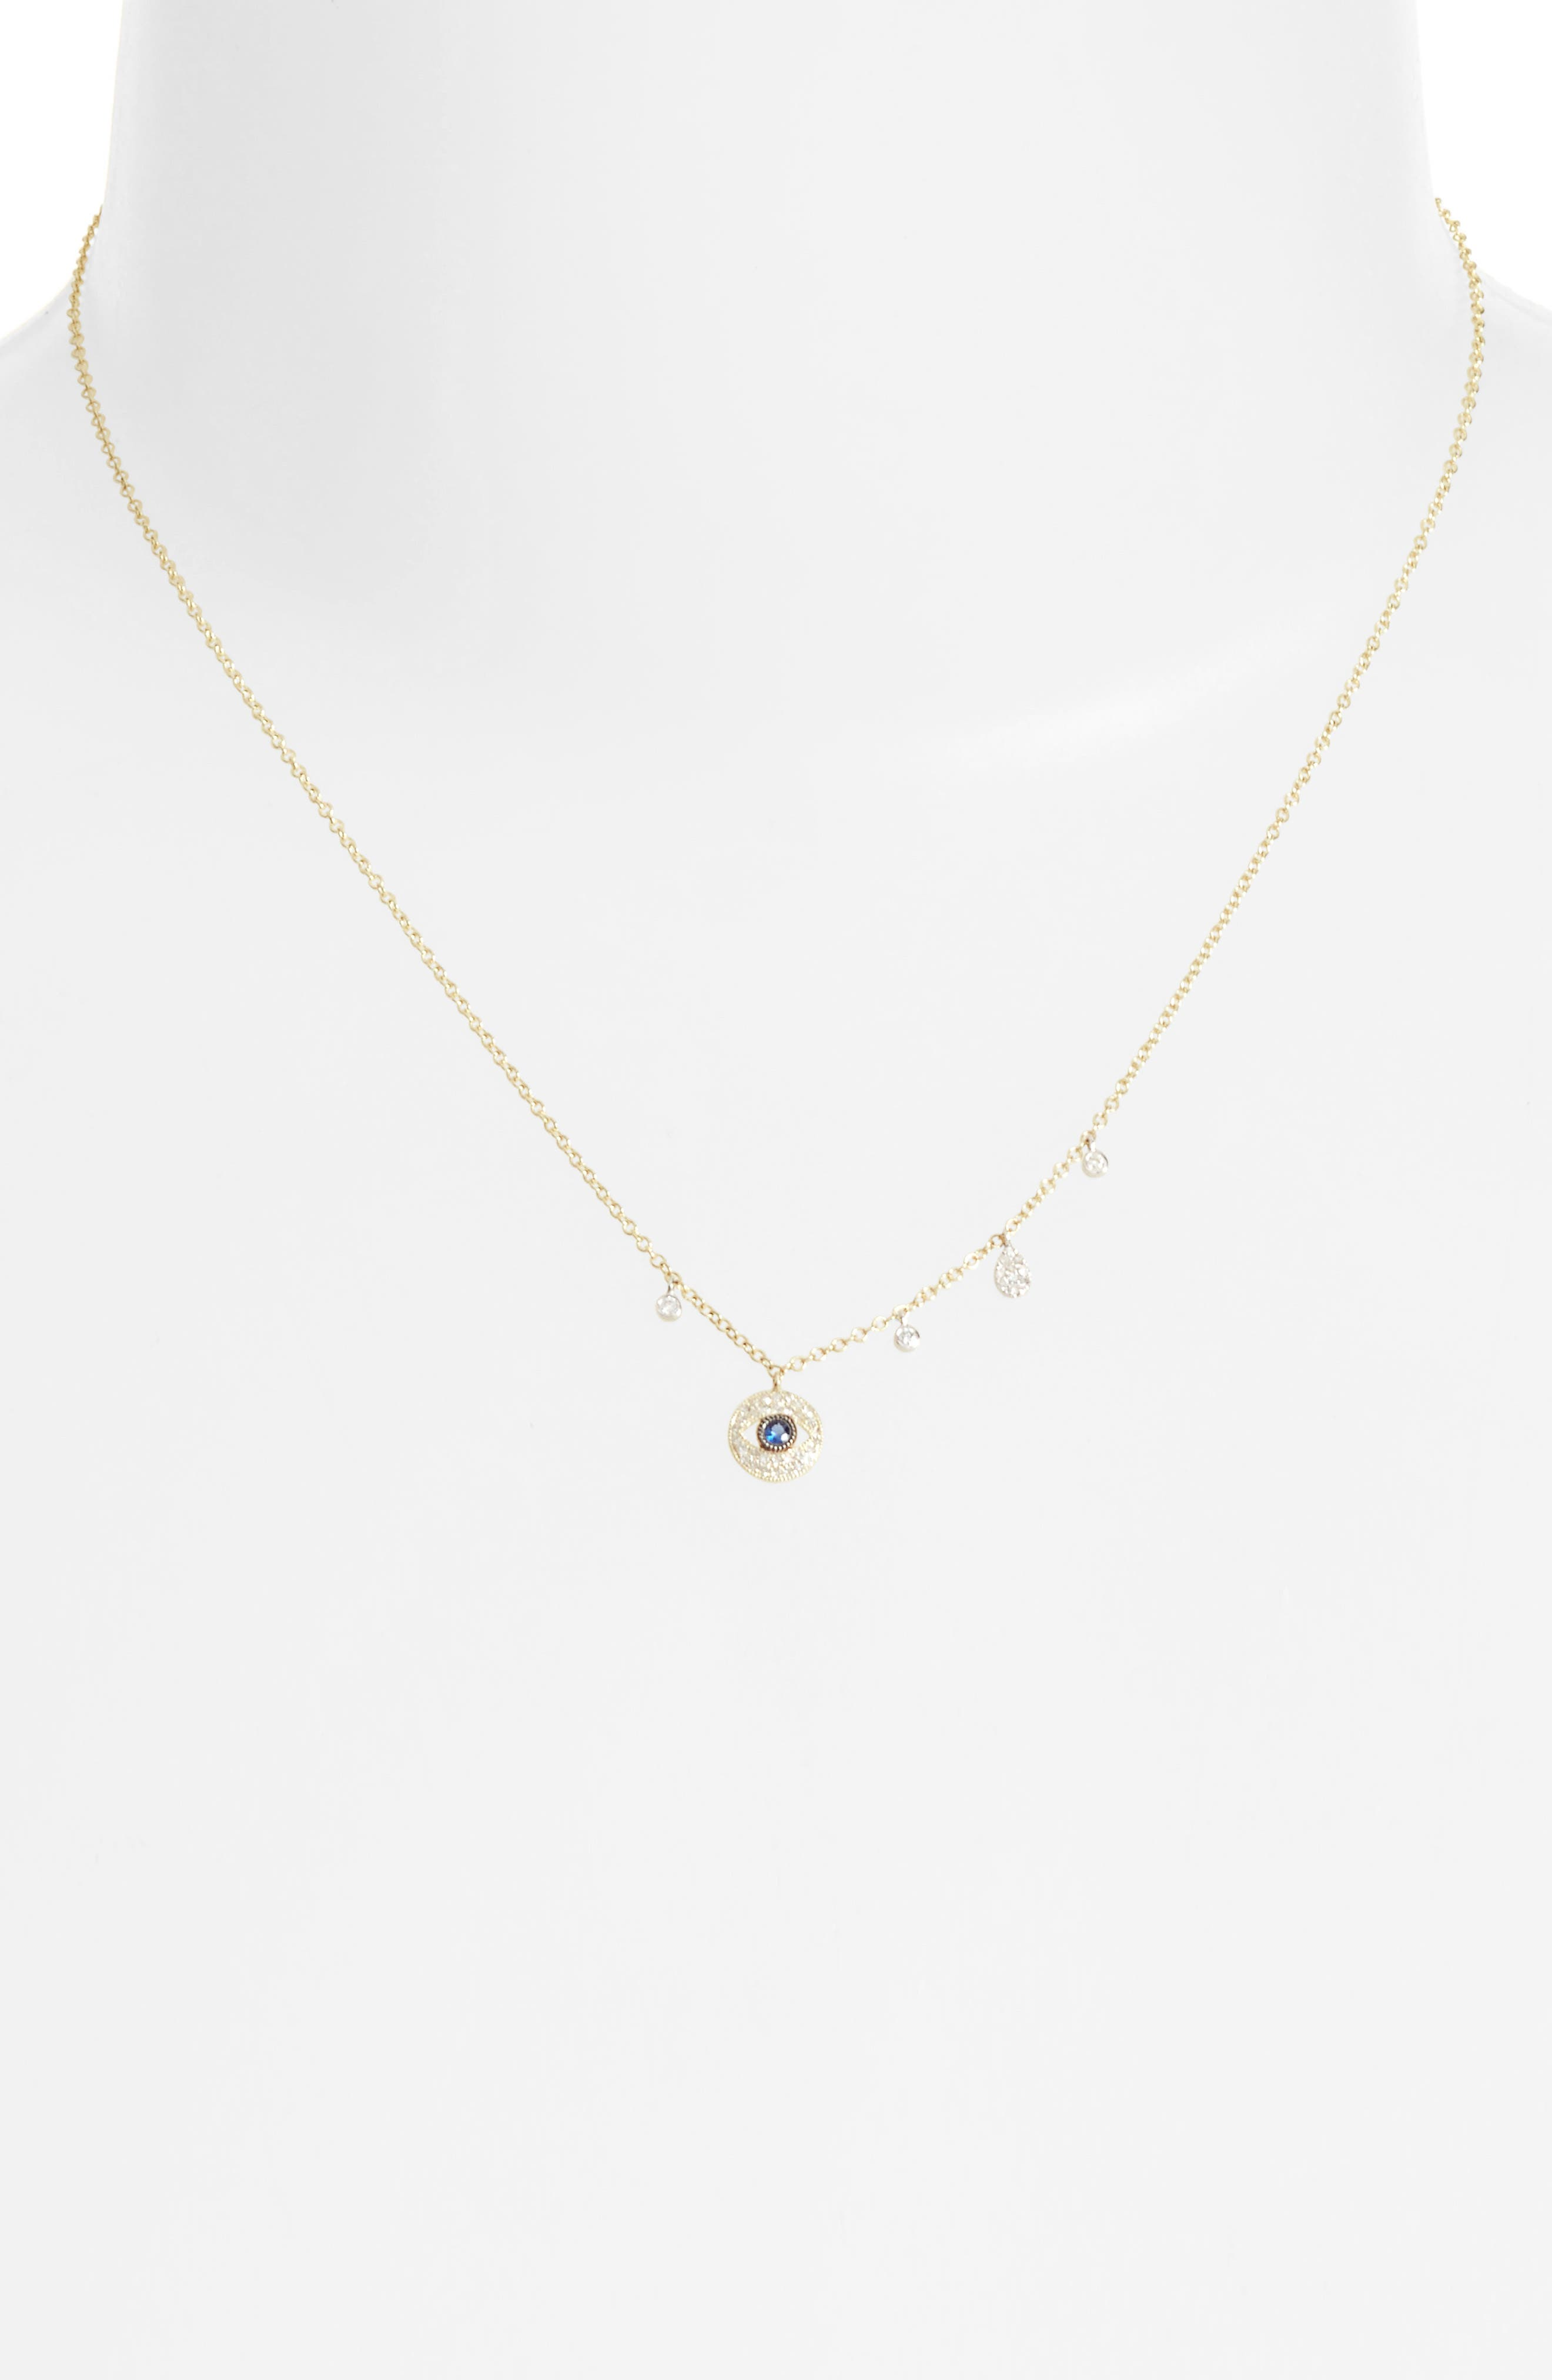 Meira T Diamond & Sapphire Evil Eye Pendant Necklace